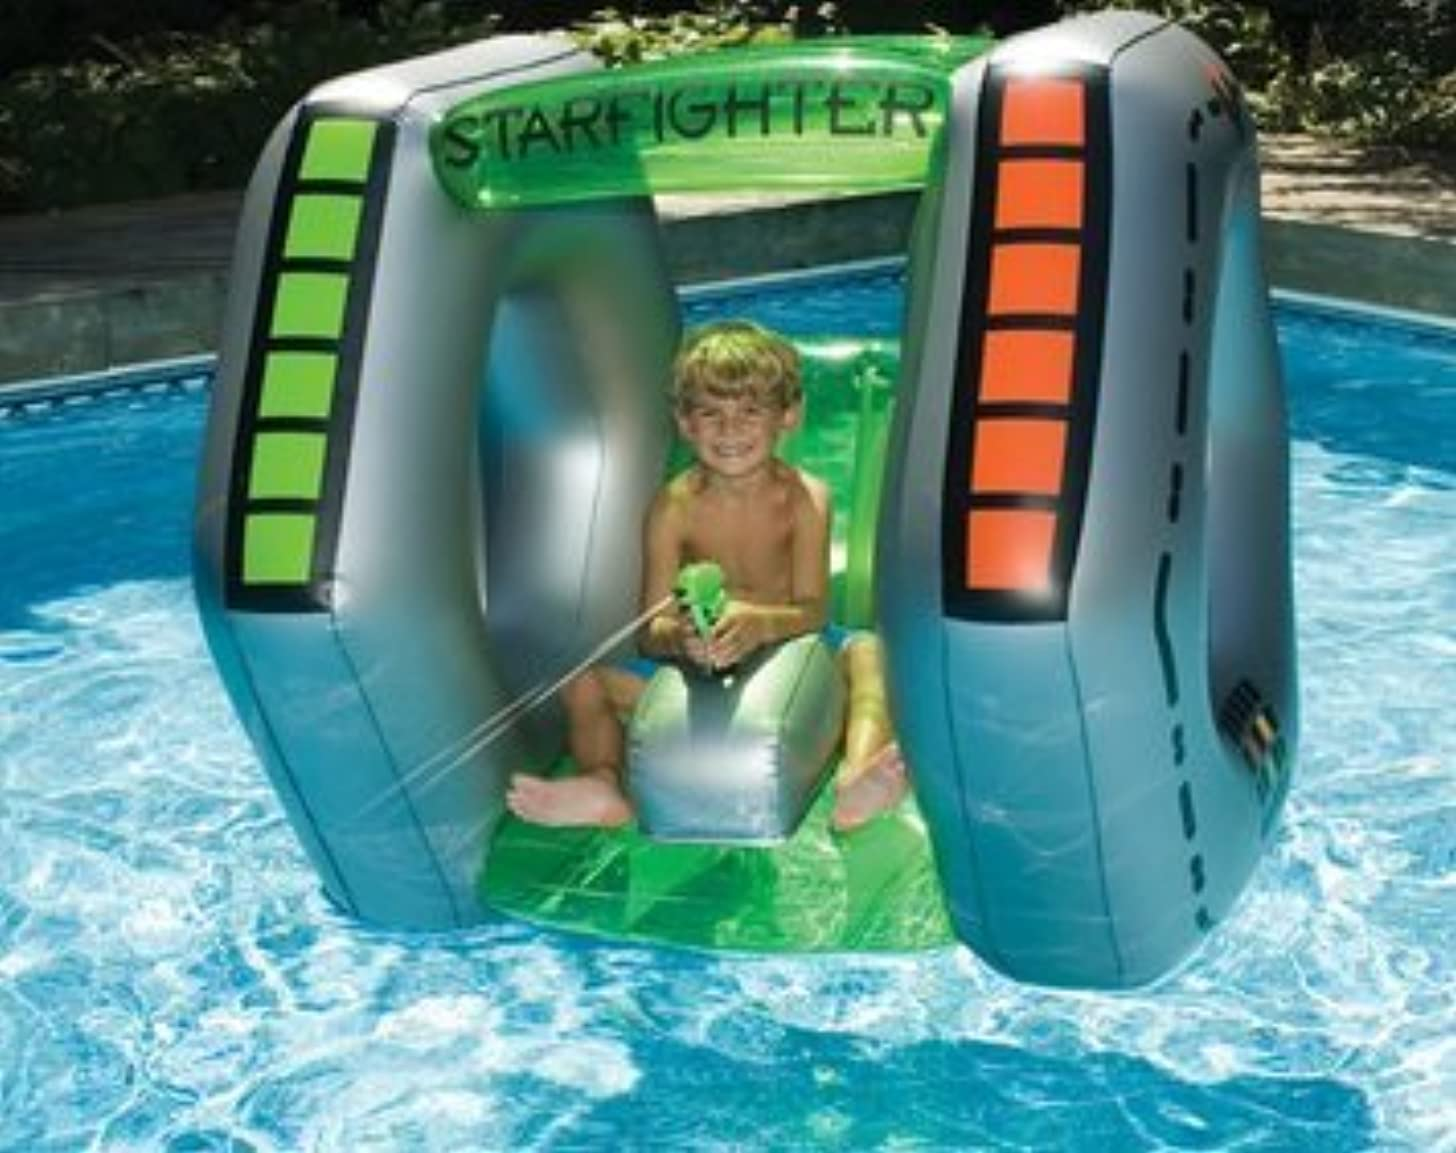 Star fighter Water Toy Float for Swimming Pool & Beach